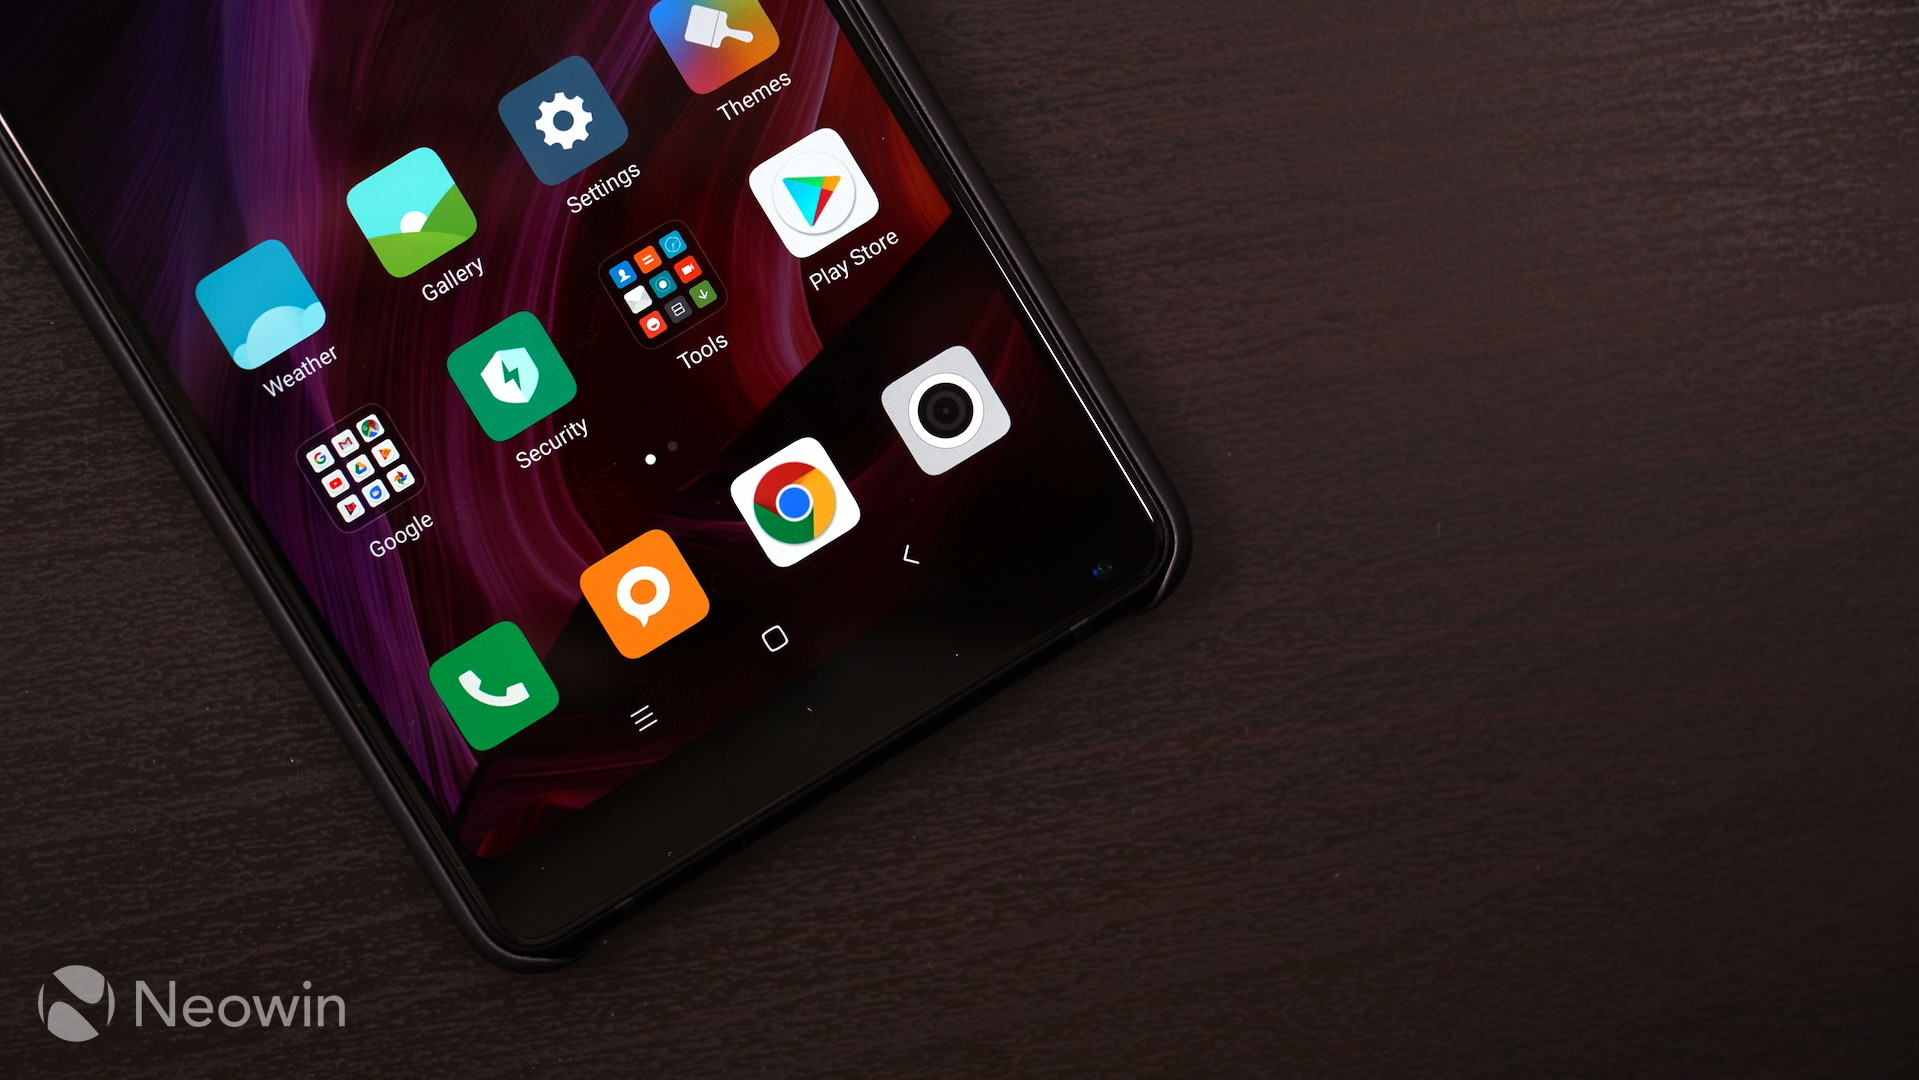 FYI: Converting a Mi MIX 2 to the global OS using the Xiaomi